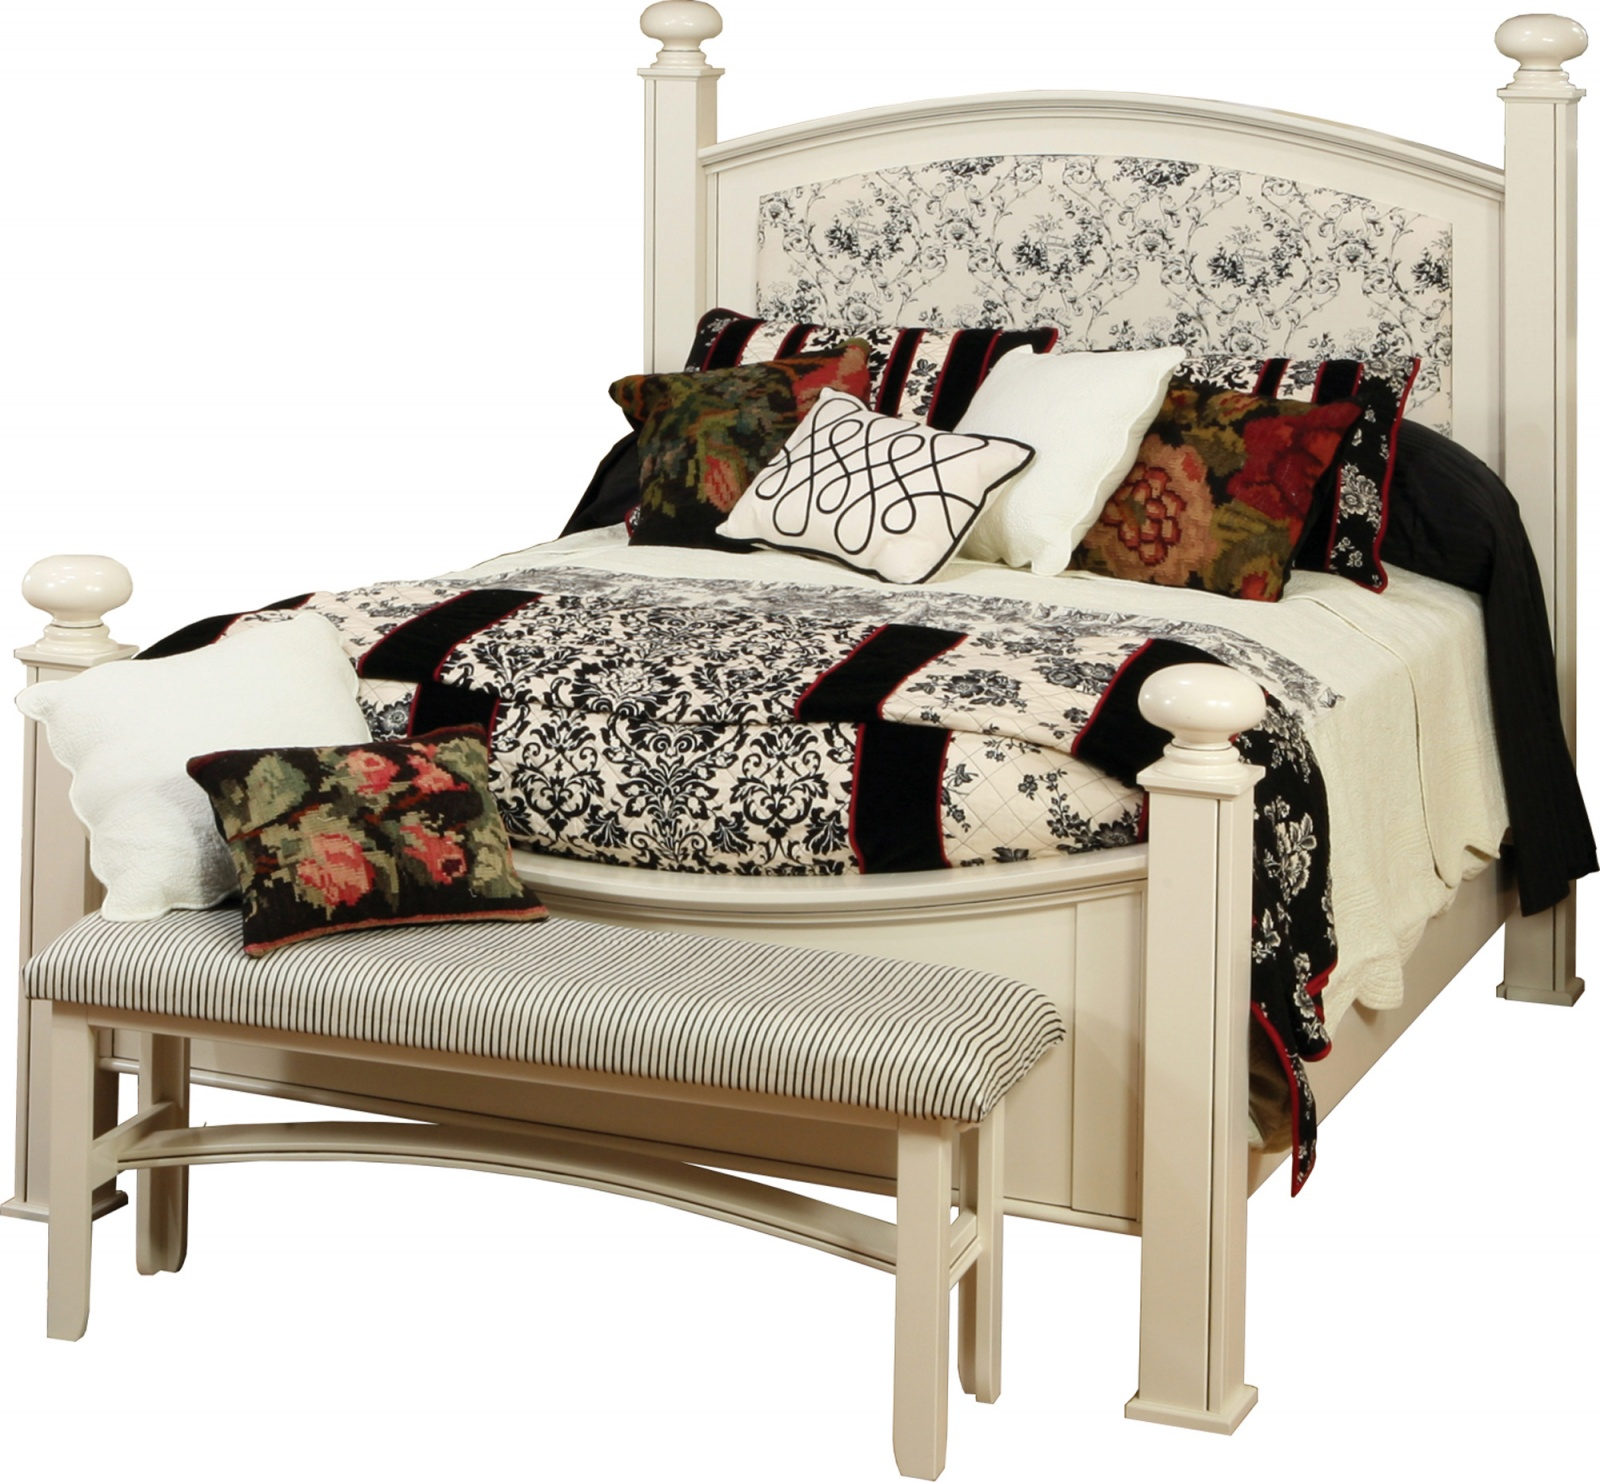 Luellen Bed with Fabric